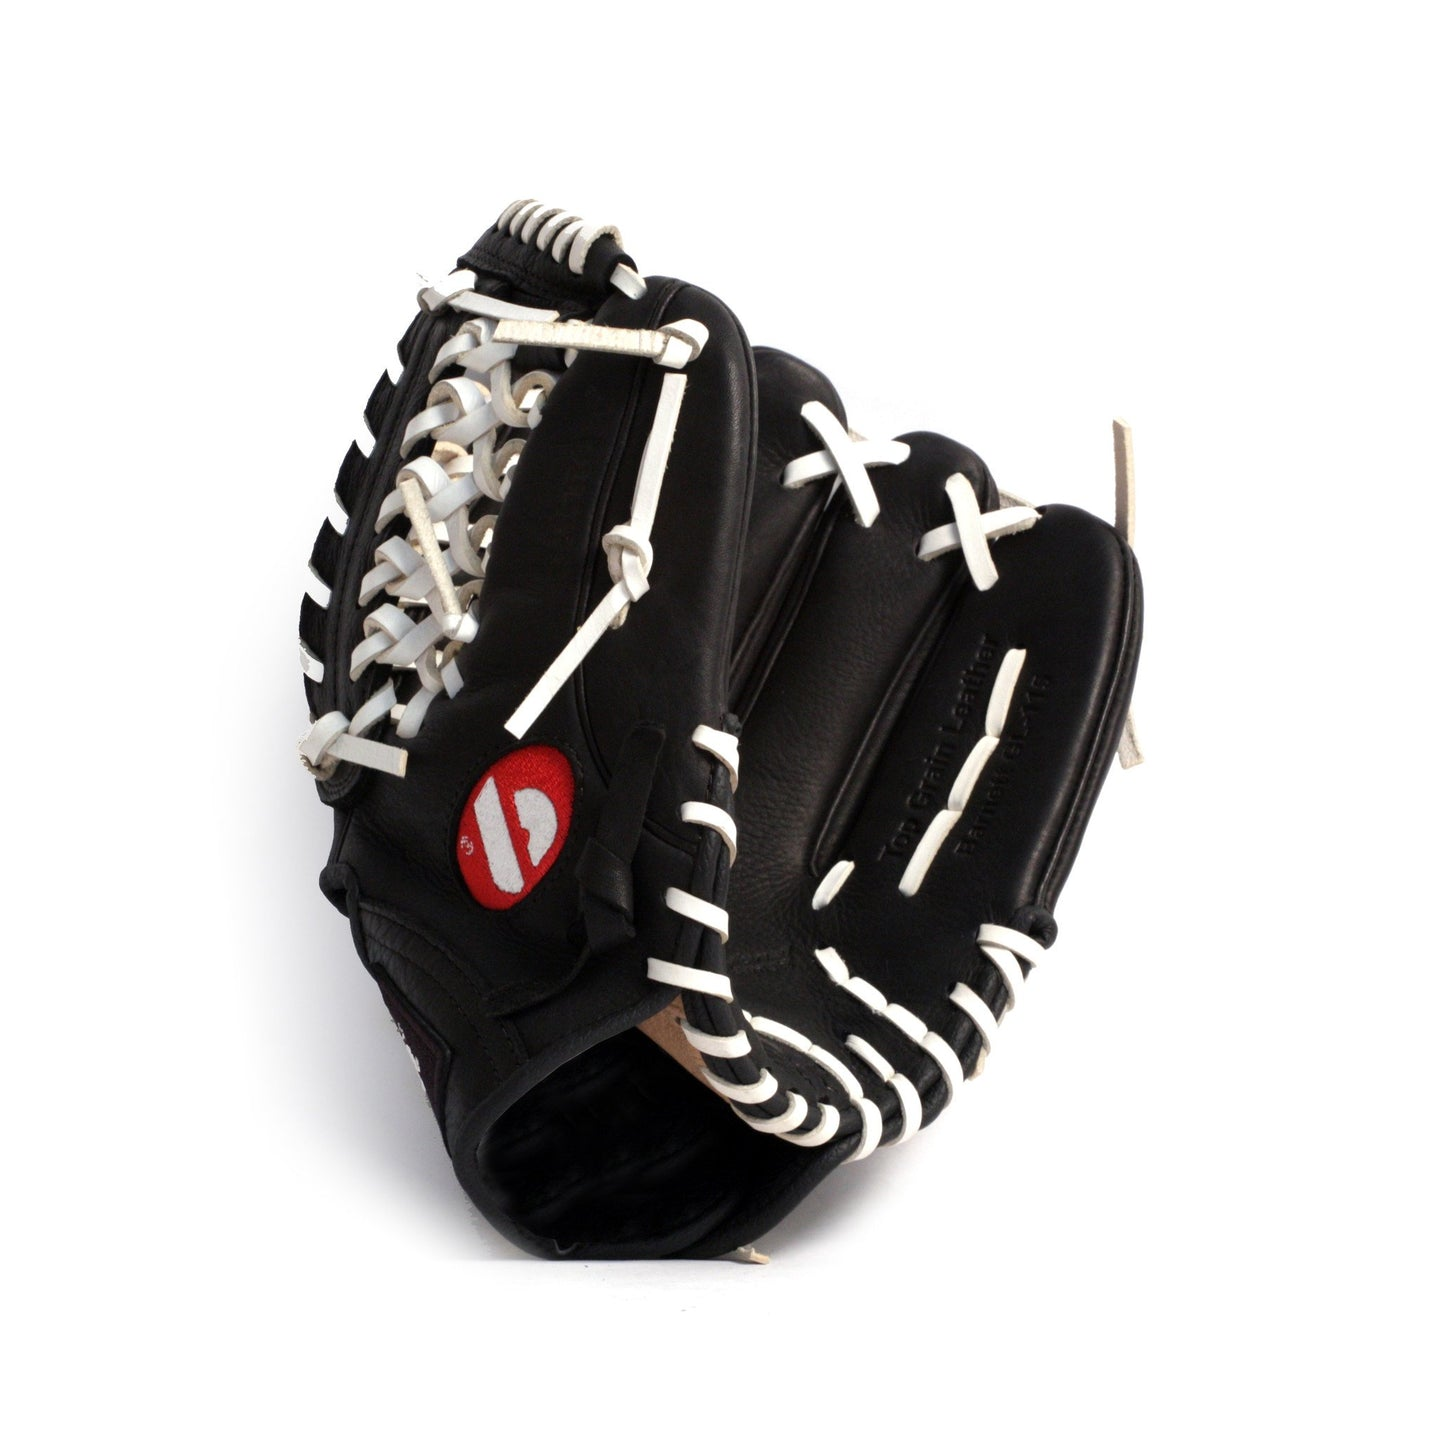 GL-115  Competition infield baseball Glove 11.5, black